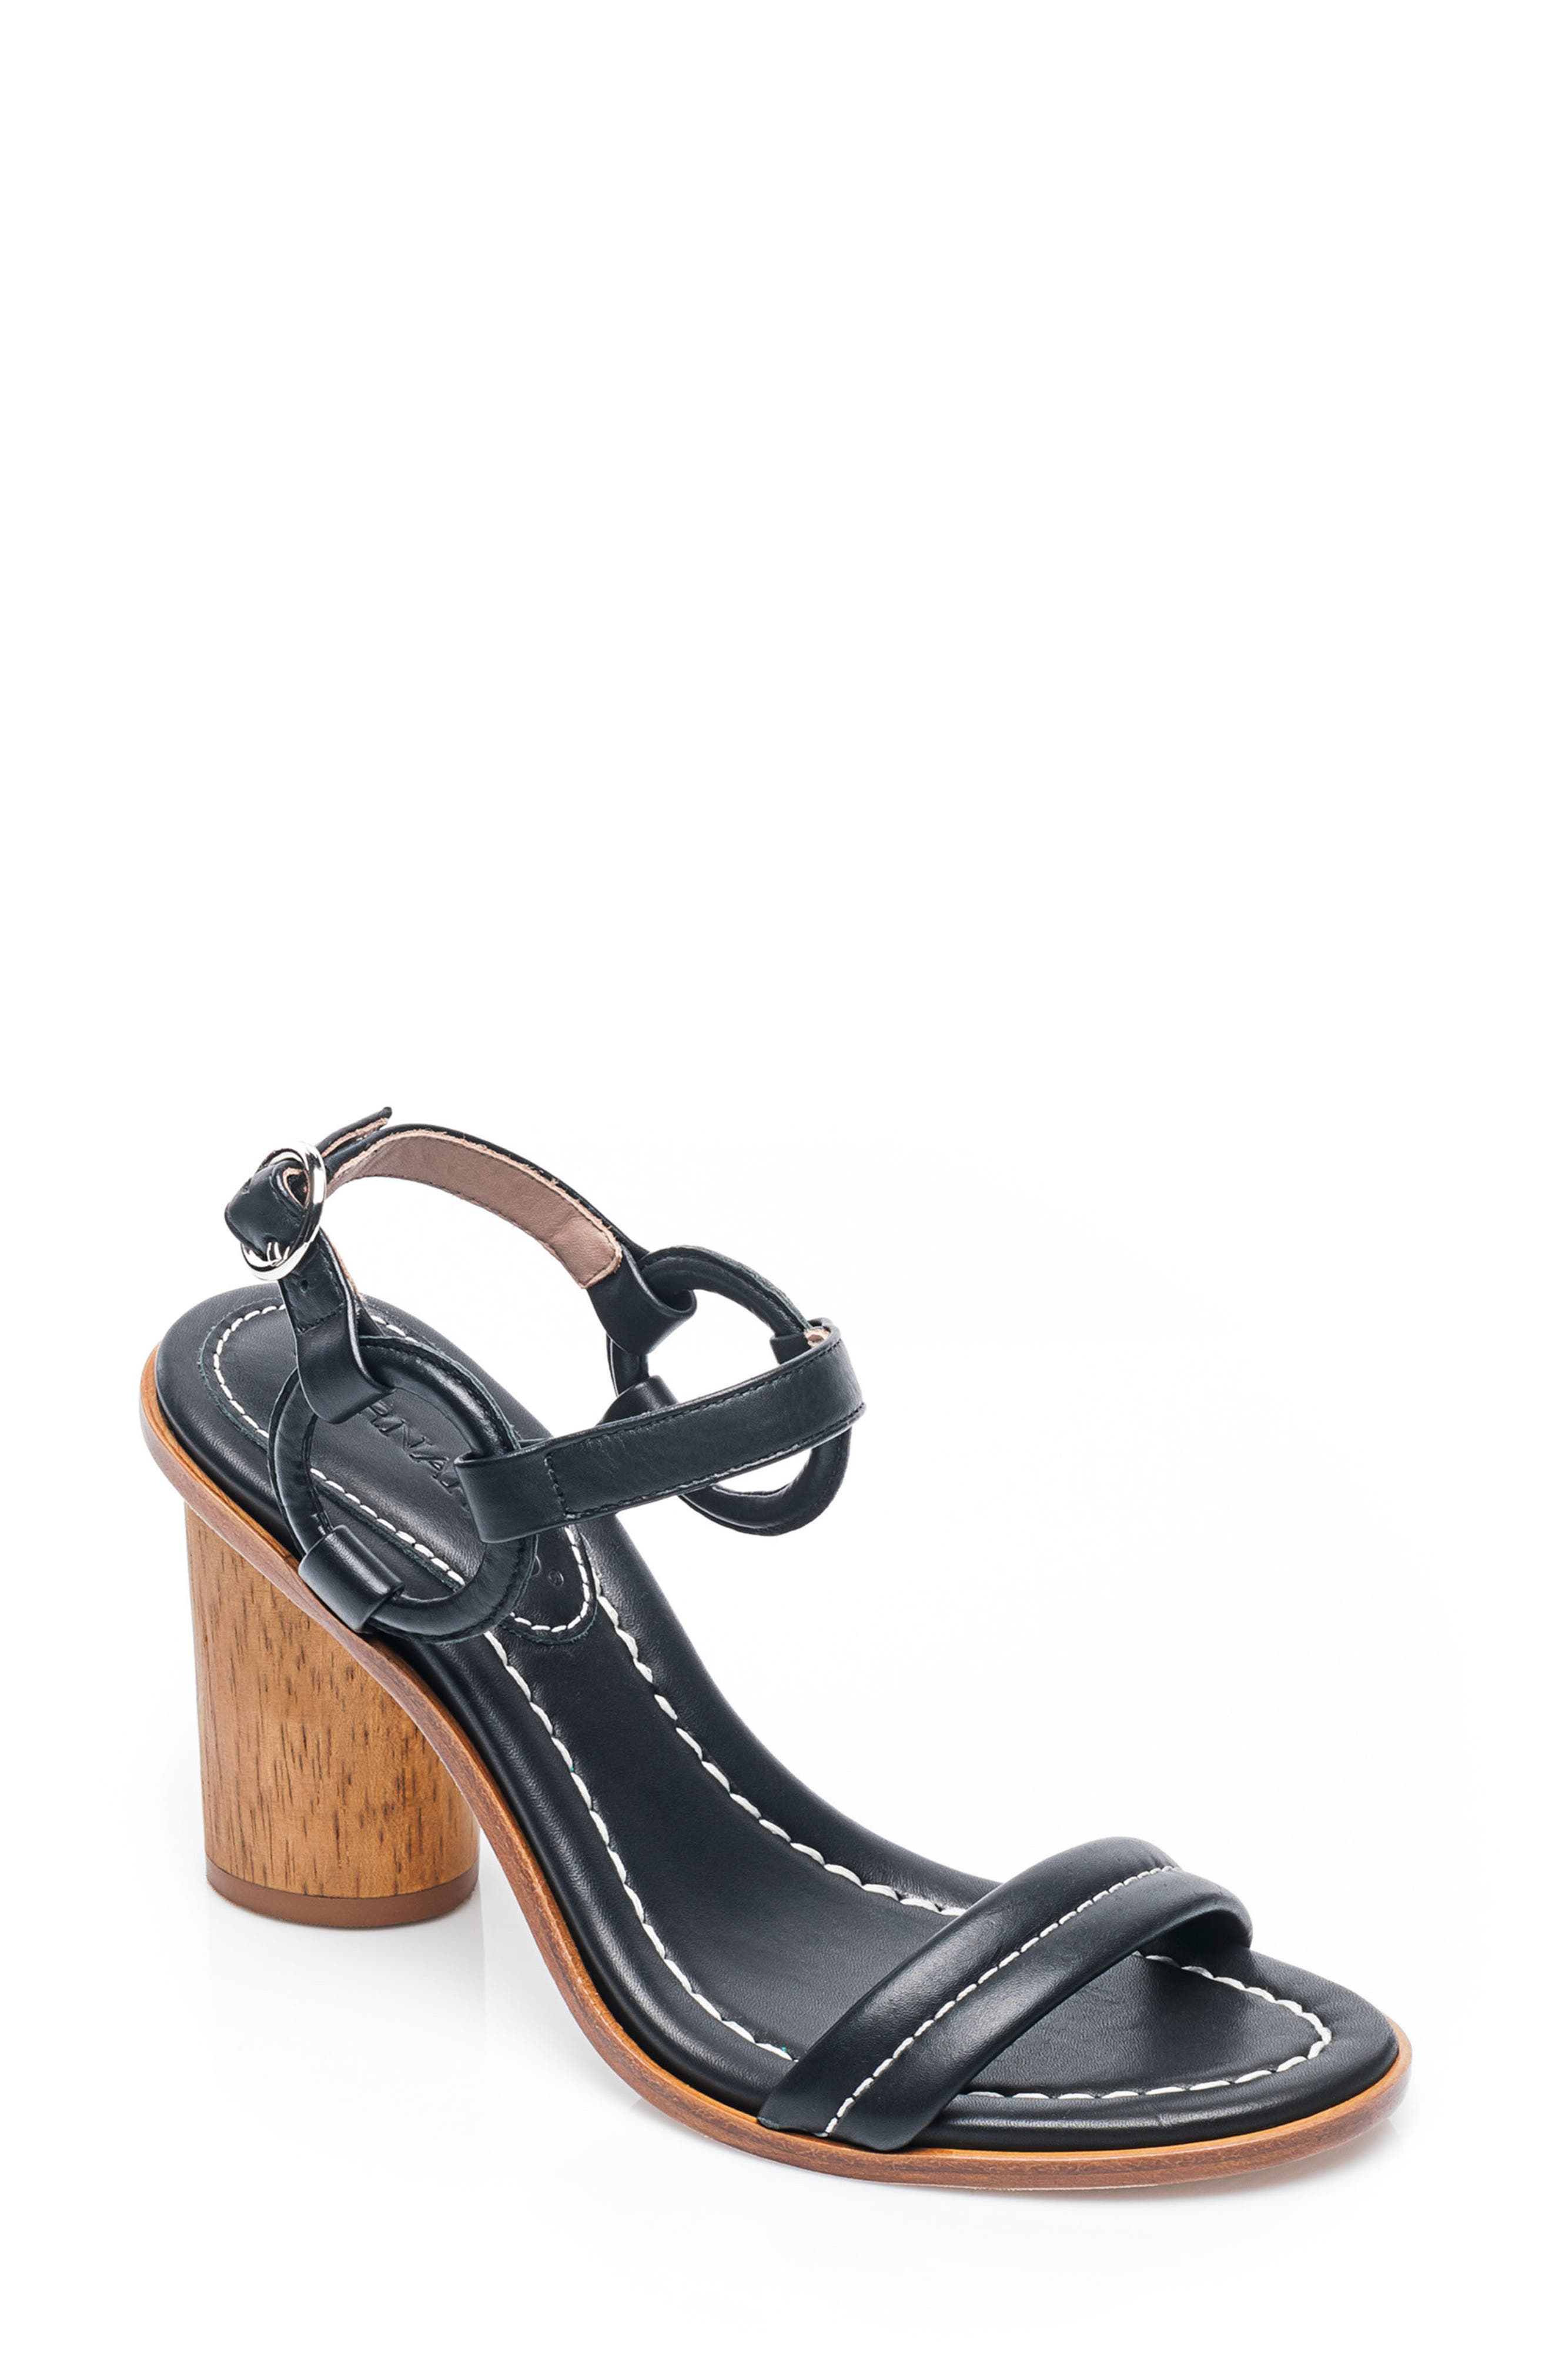 Bernardo Harlow Ankle Strap Sandal,                             Main thumbnail 1, color,                             BLACK LEATHER